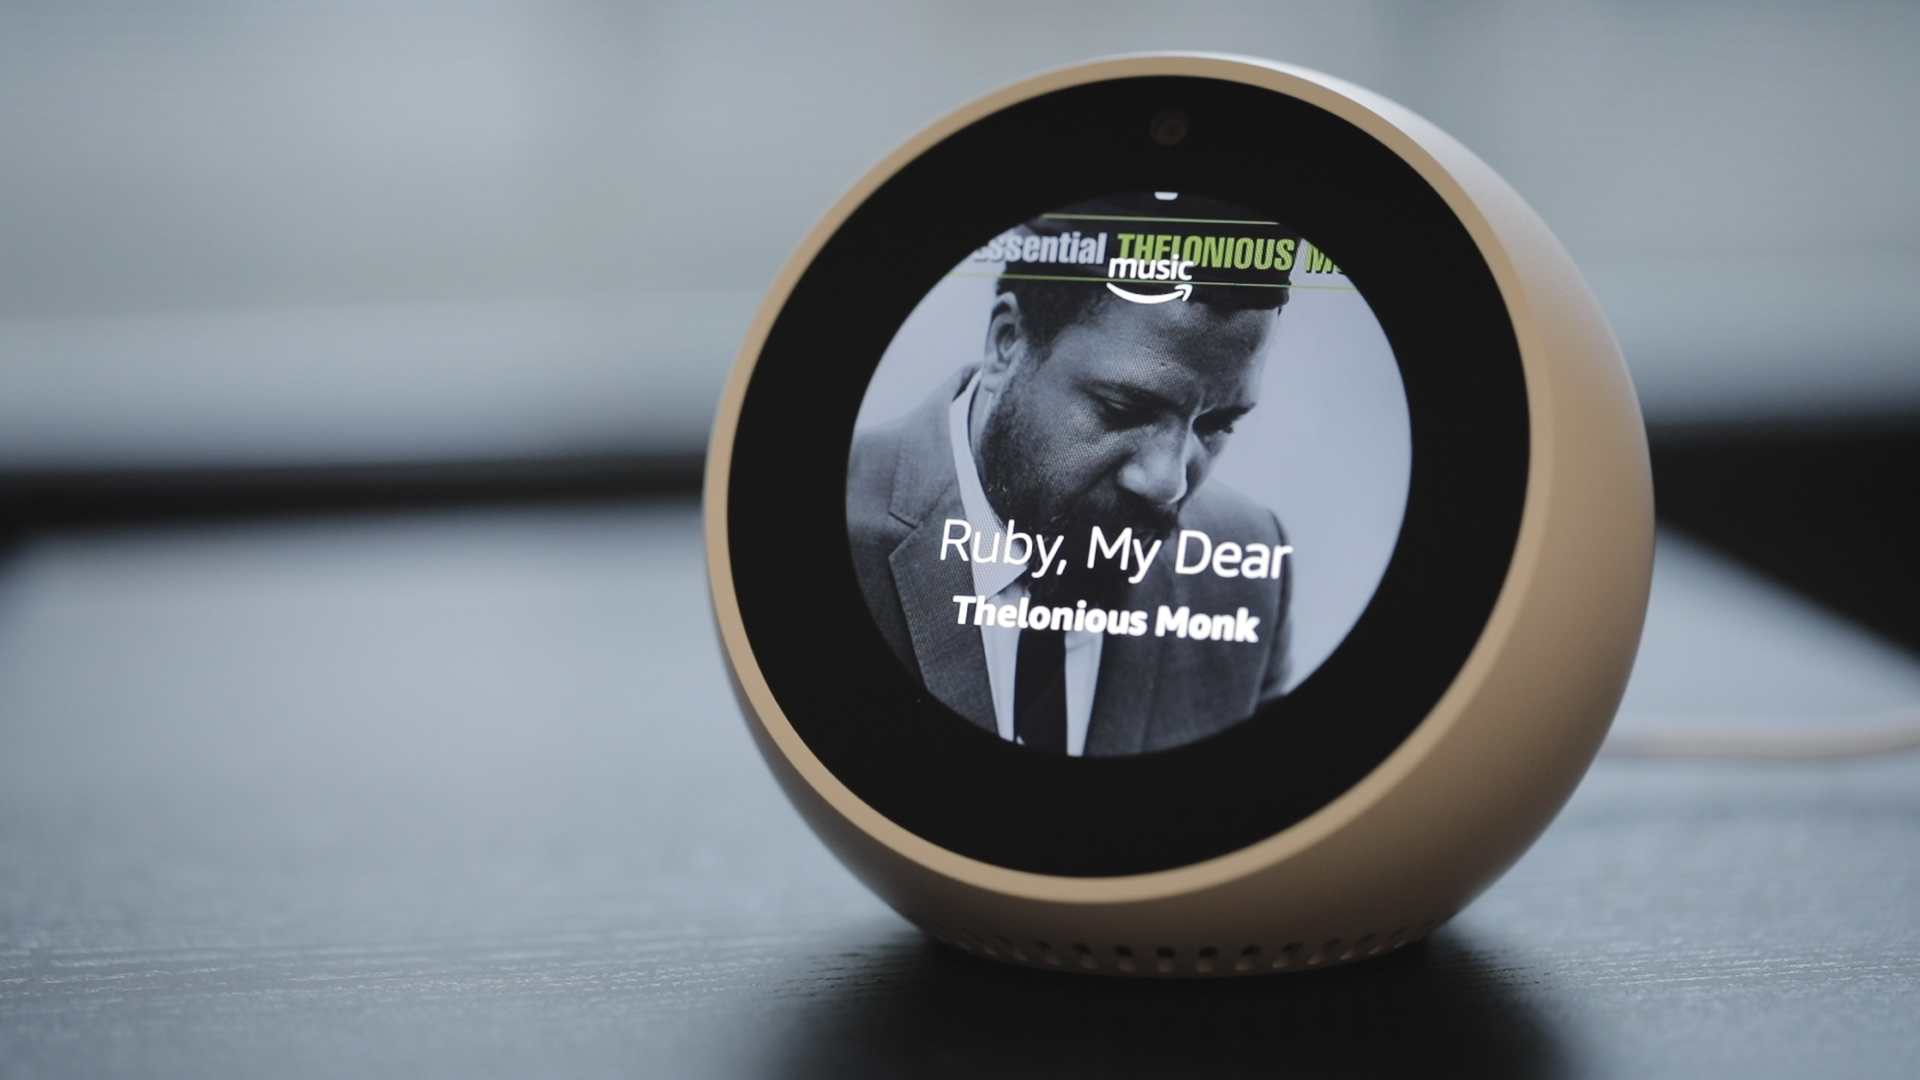 The Echo Spot is my new favorite Alexa device | TechCrunch